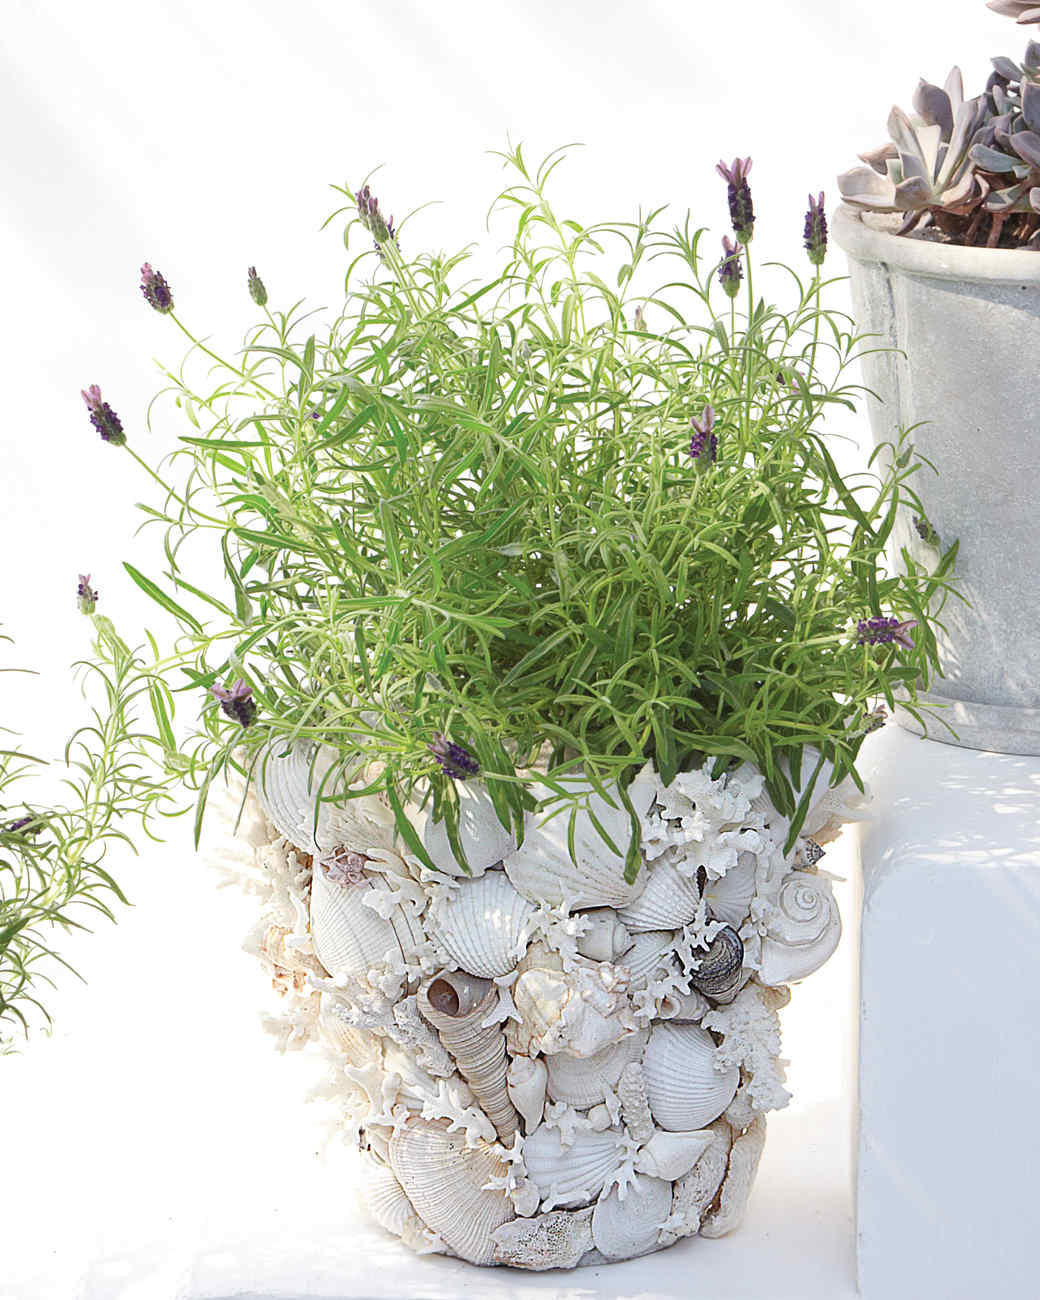 Use Shells to Decorate Flower Pots